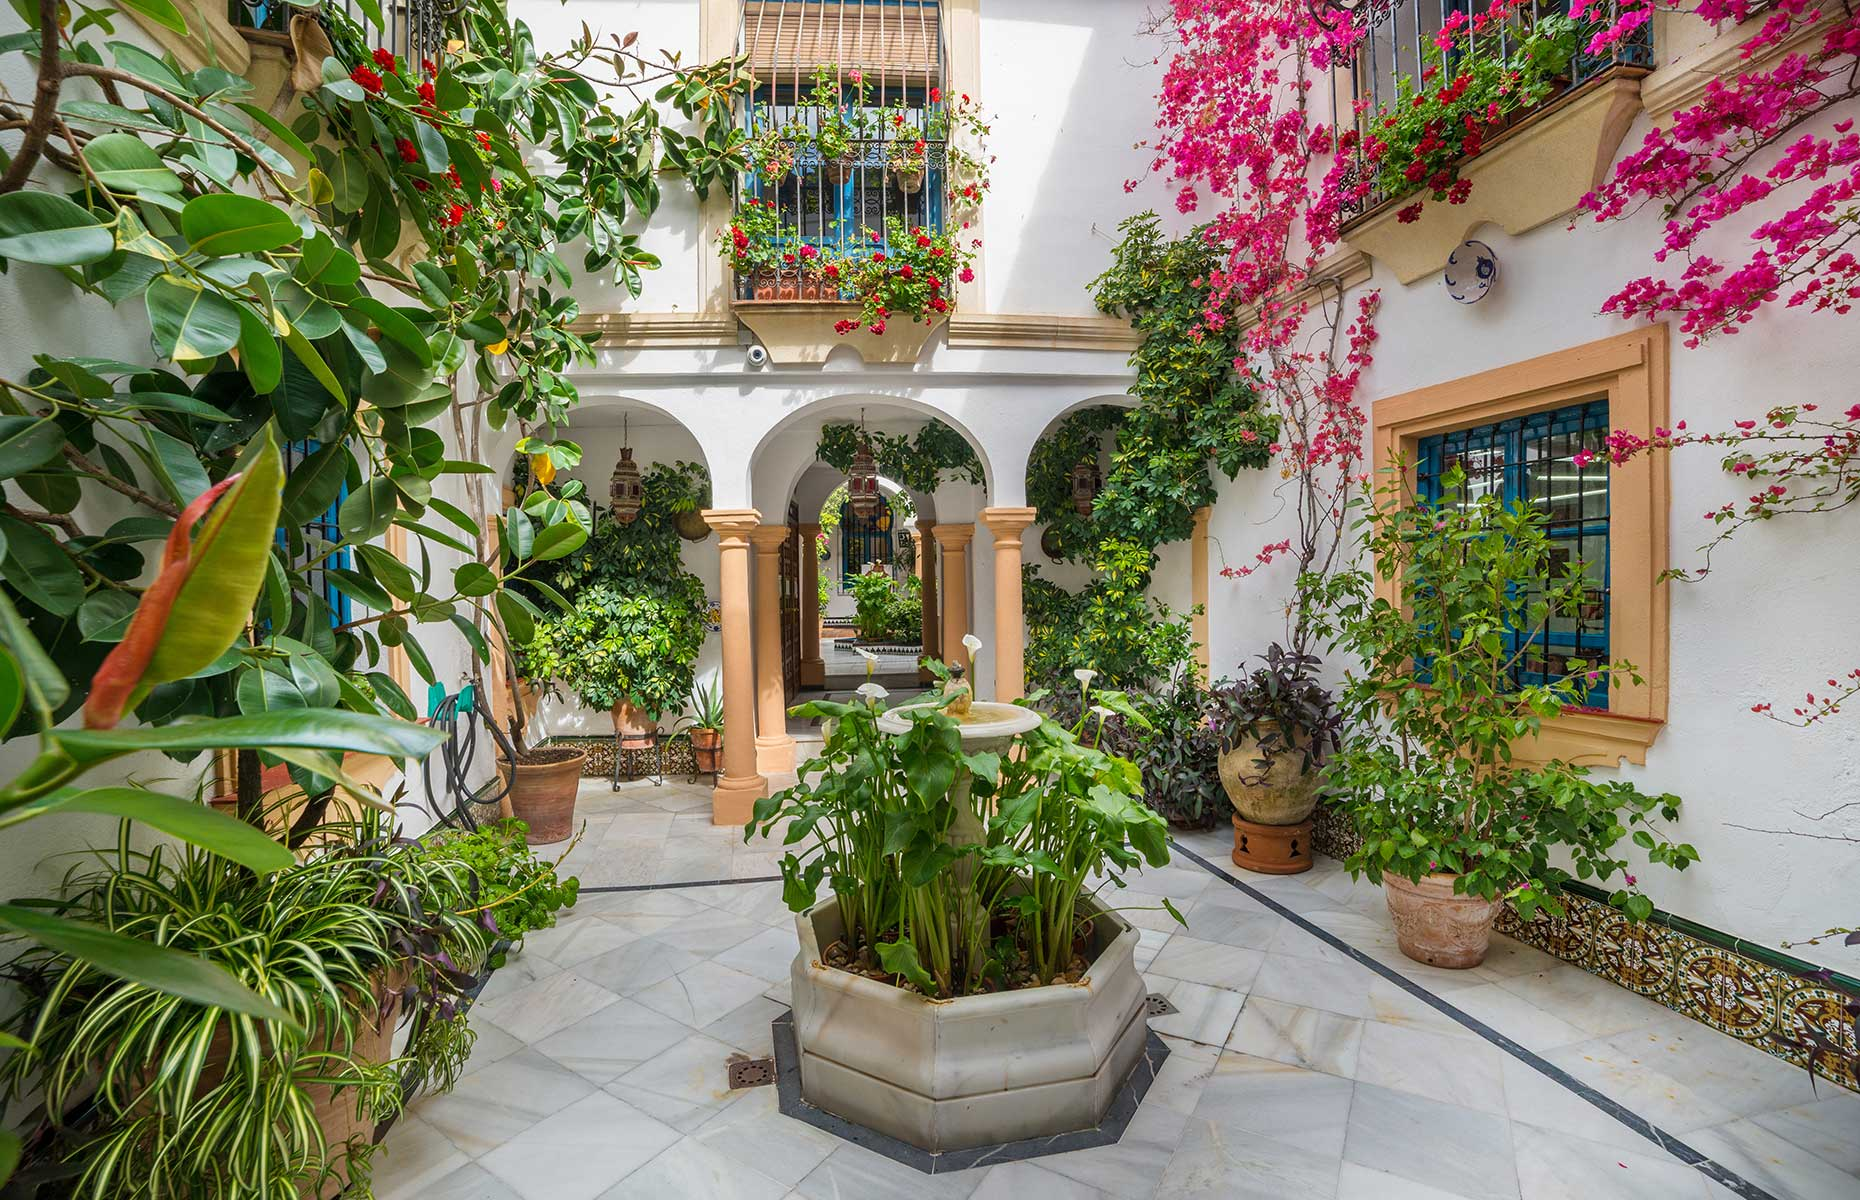 Traditional Córdoban patio (Image: Cristian Balate/Shutterstock)